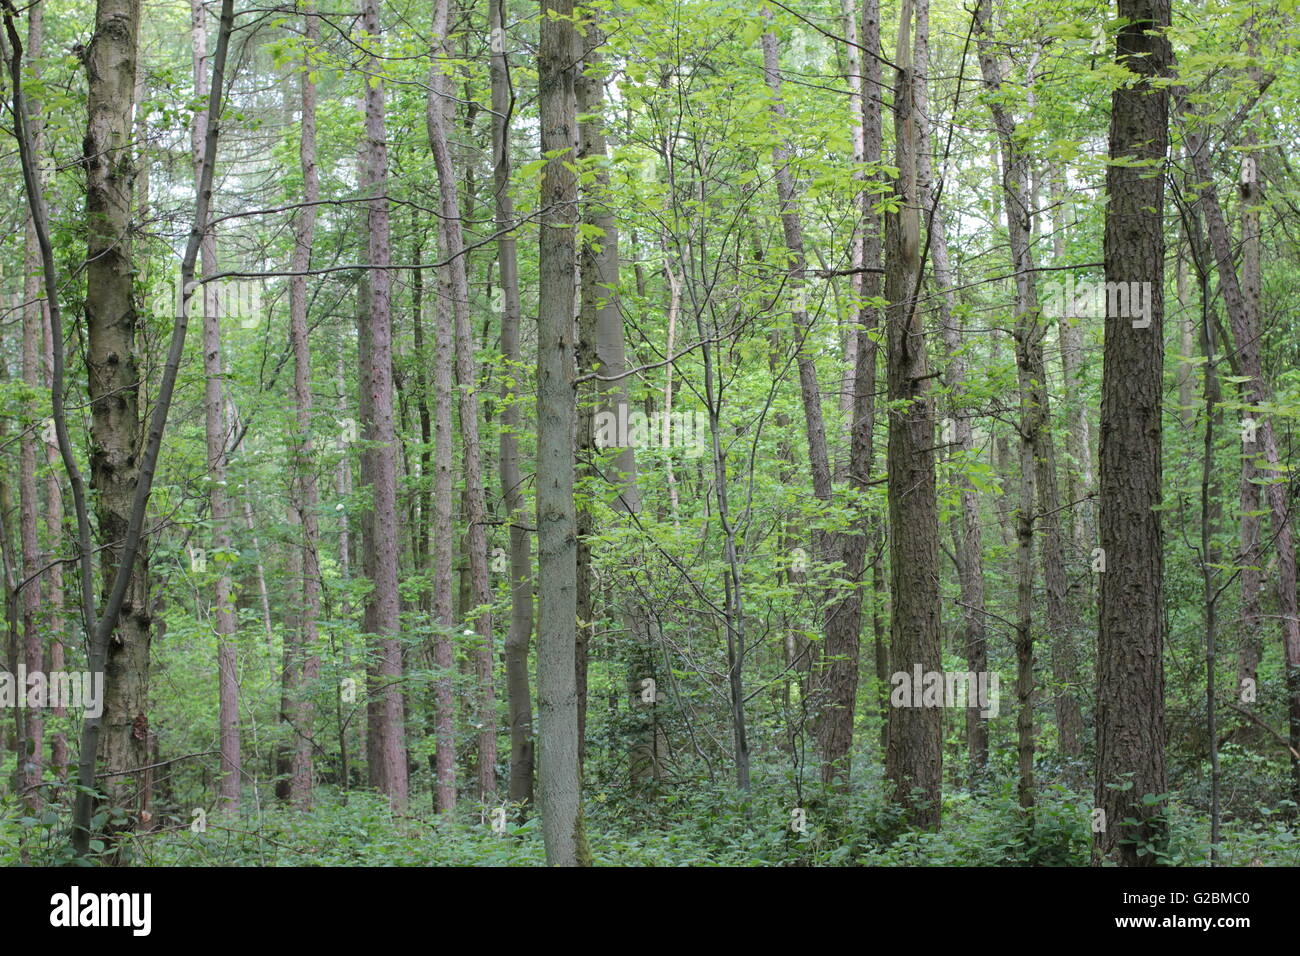 Coppiced managed woodland - Stock Image